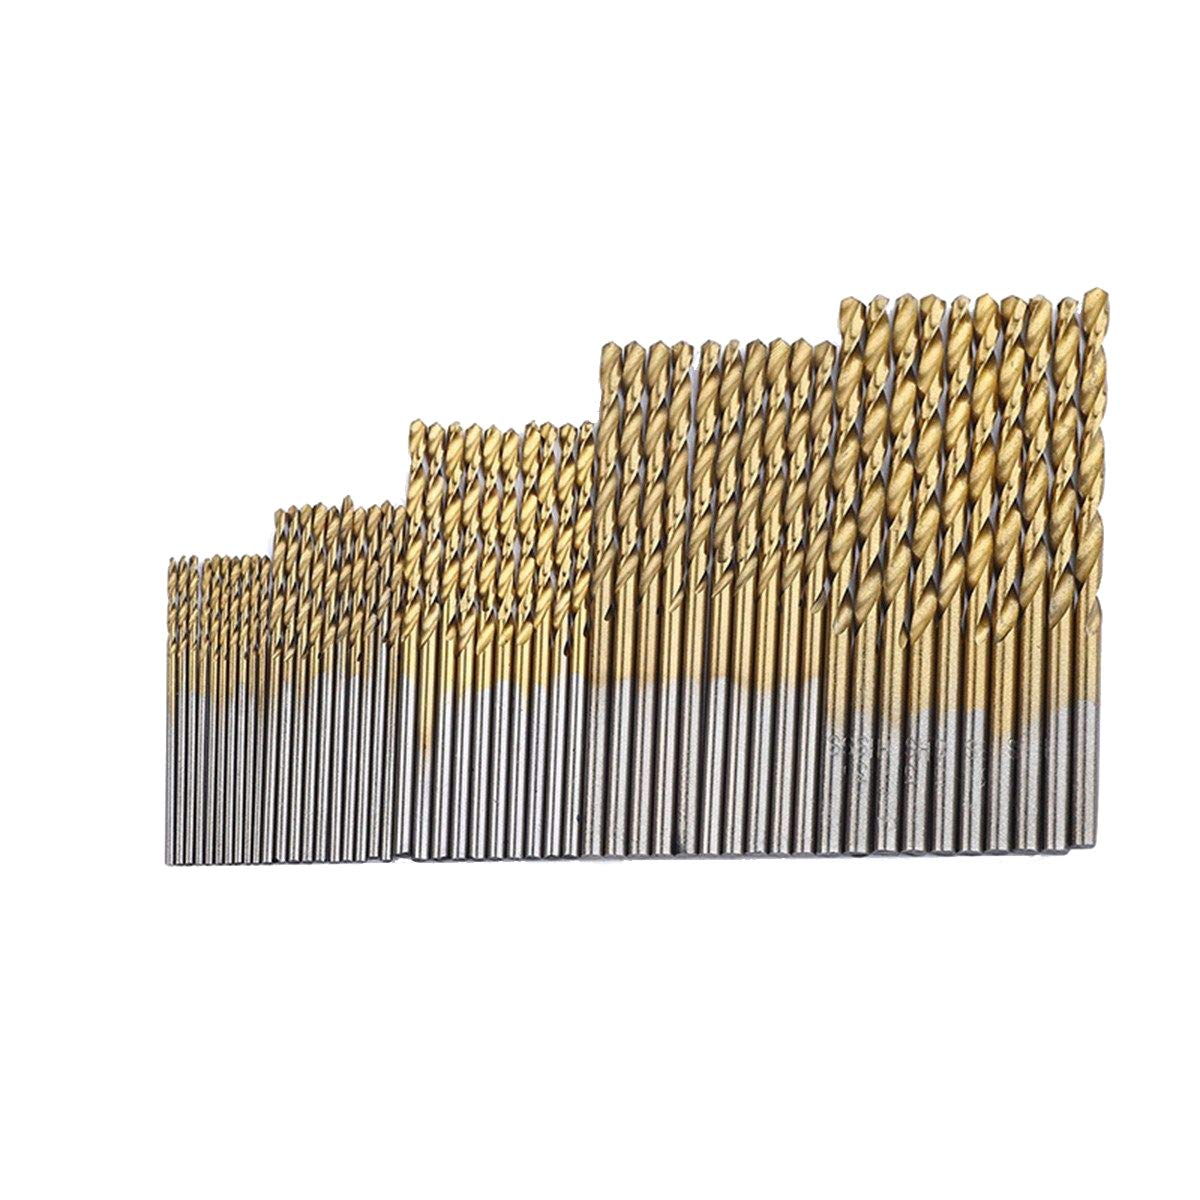 Driak 50PCS Titanium Coated High Speed Steel Twist Drill Bit Set Micro Precision bit 1 1.5 2 2.5 3mm for Wood Plastic Aluminum Copper Steel